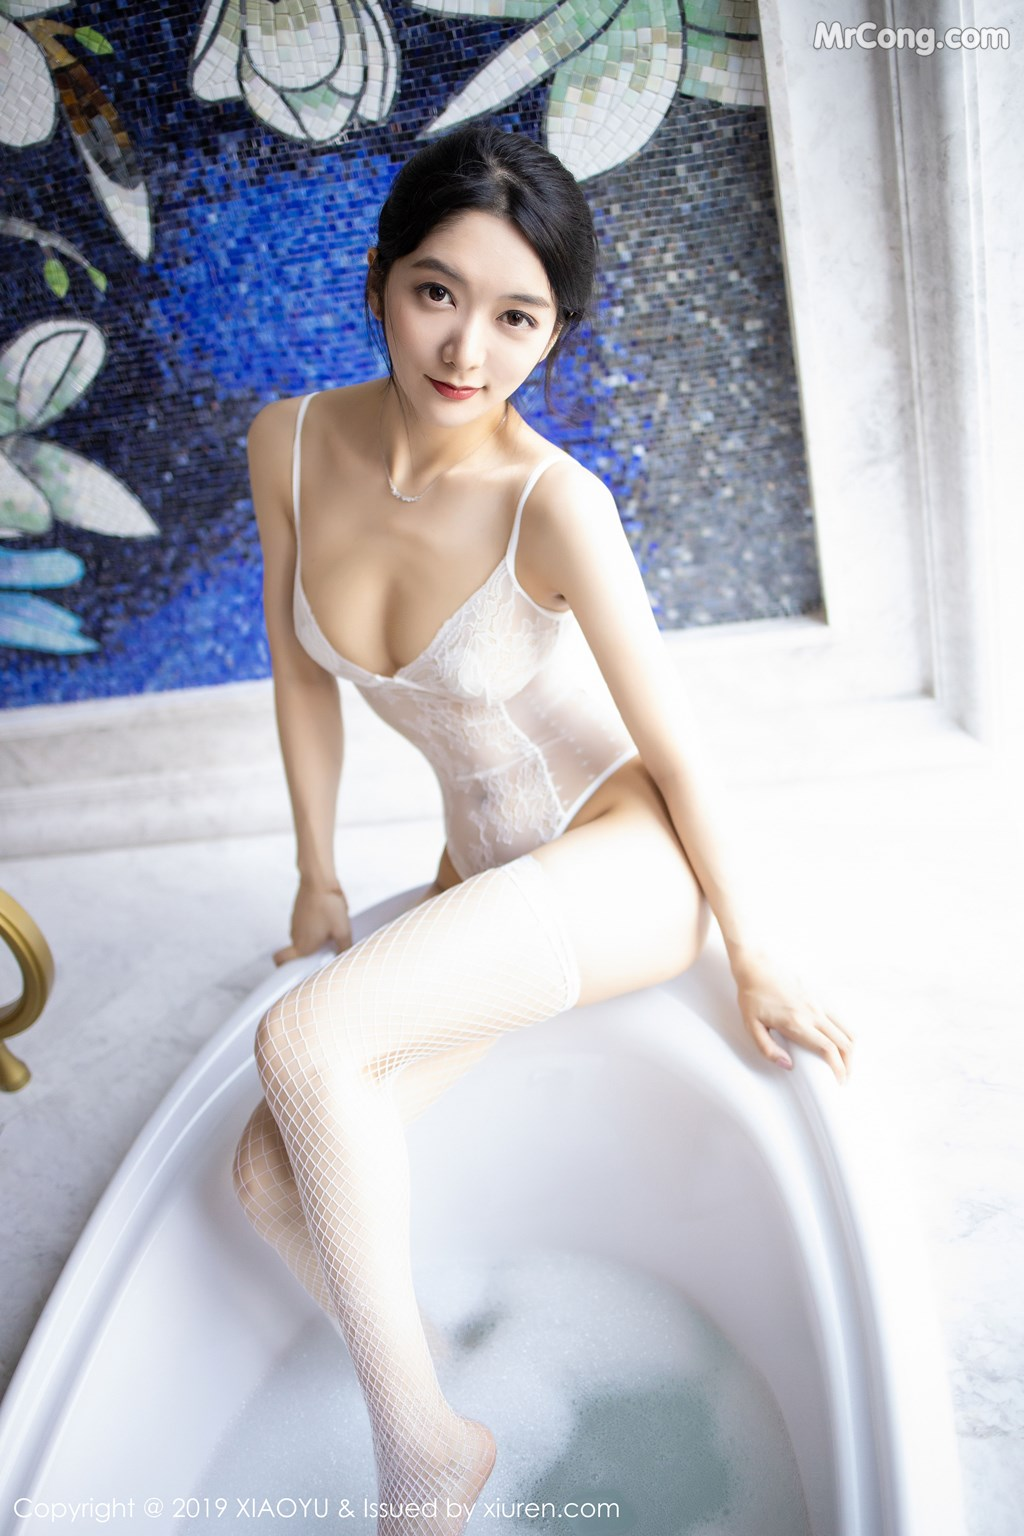 Image XiaoYu-Vol.223-Xiao-Reba-Angela-MrCong.com-010 in post XiaoYu Vol.223: Xiao Reba (Angela小热巴) (64 ảnh)